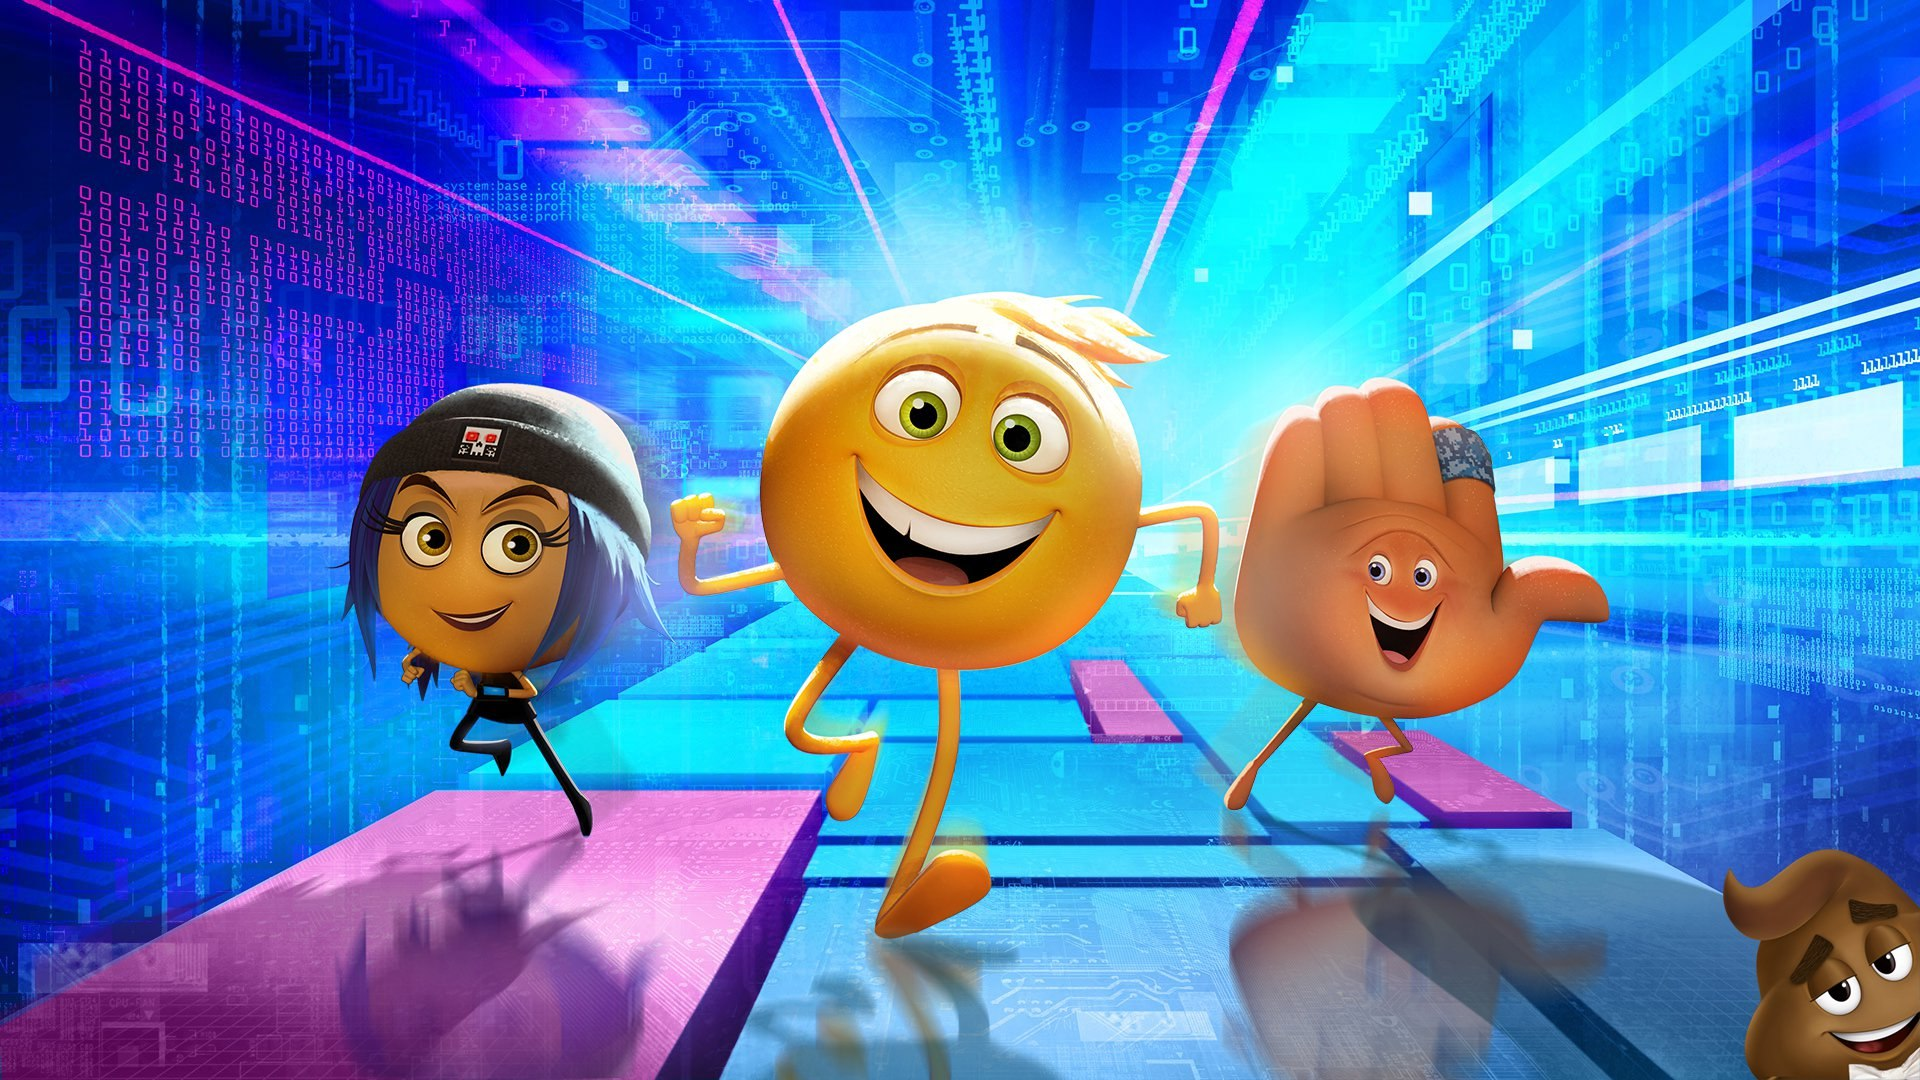 Watch Online | The Emoji Movie - Full Movie HD (1080p) Anime Movie